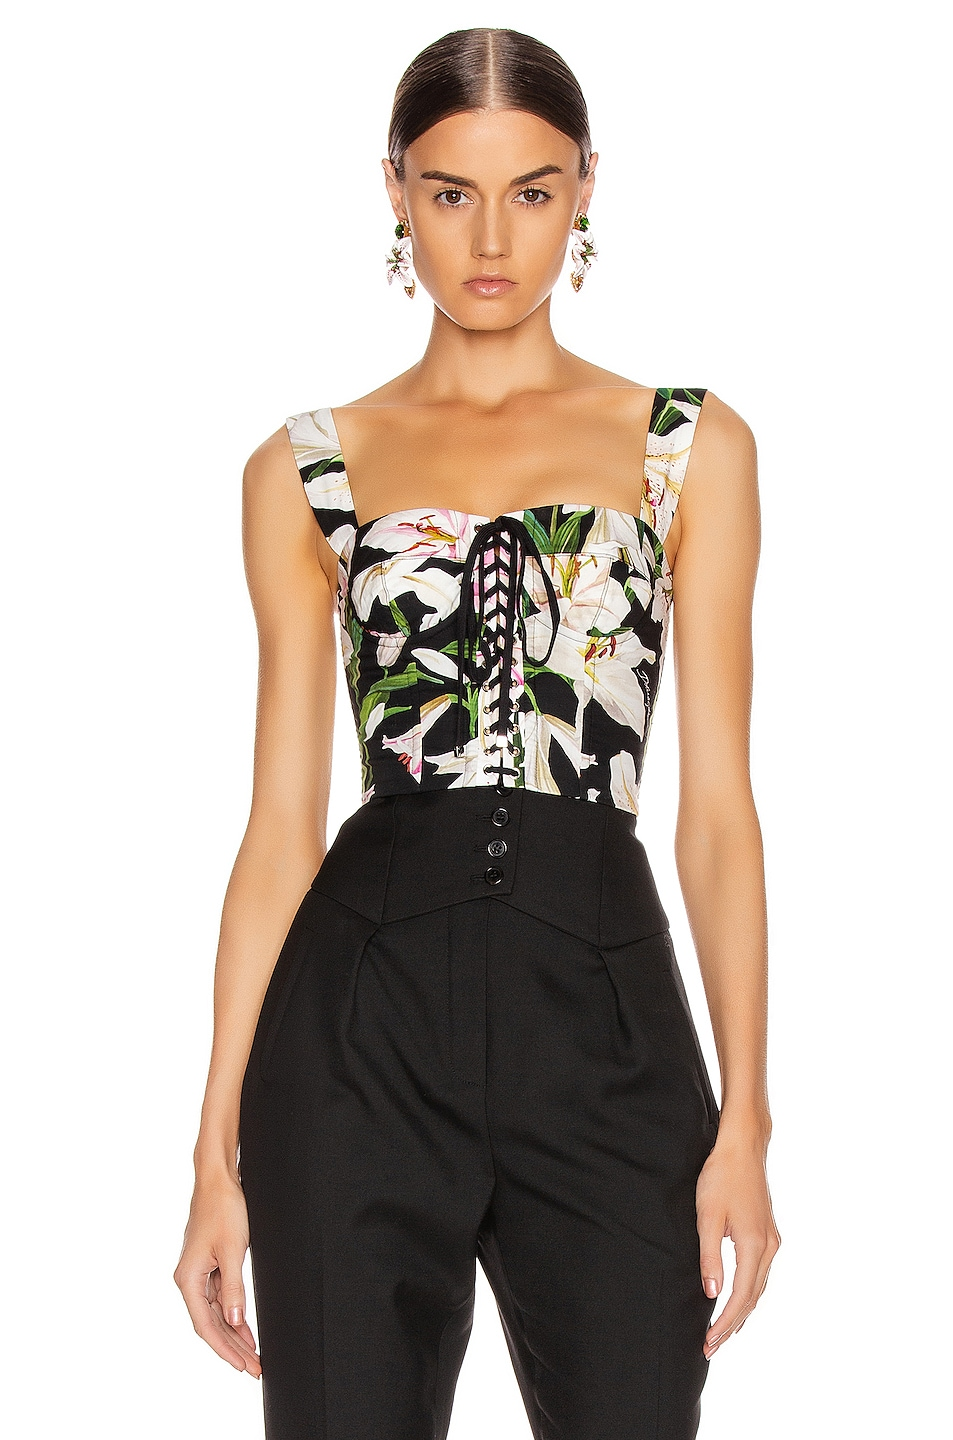 Image 2 of Dolce & Gabbana Lace Up Short Corset Top in Black Floral